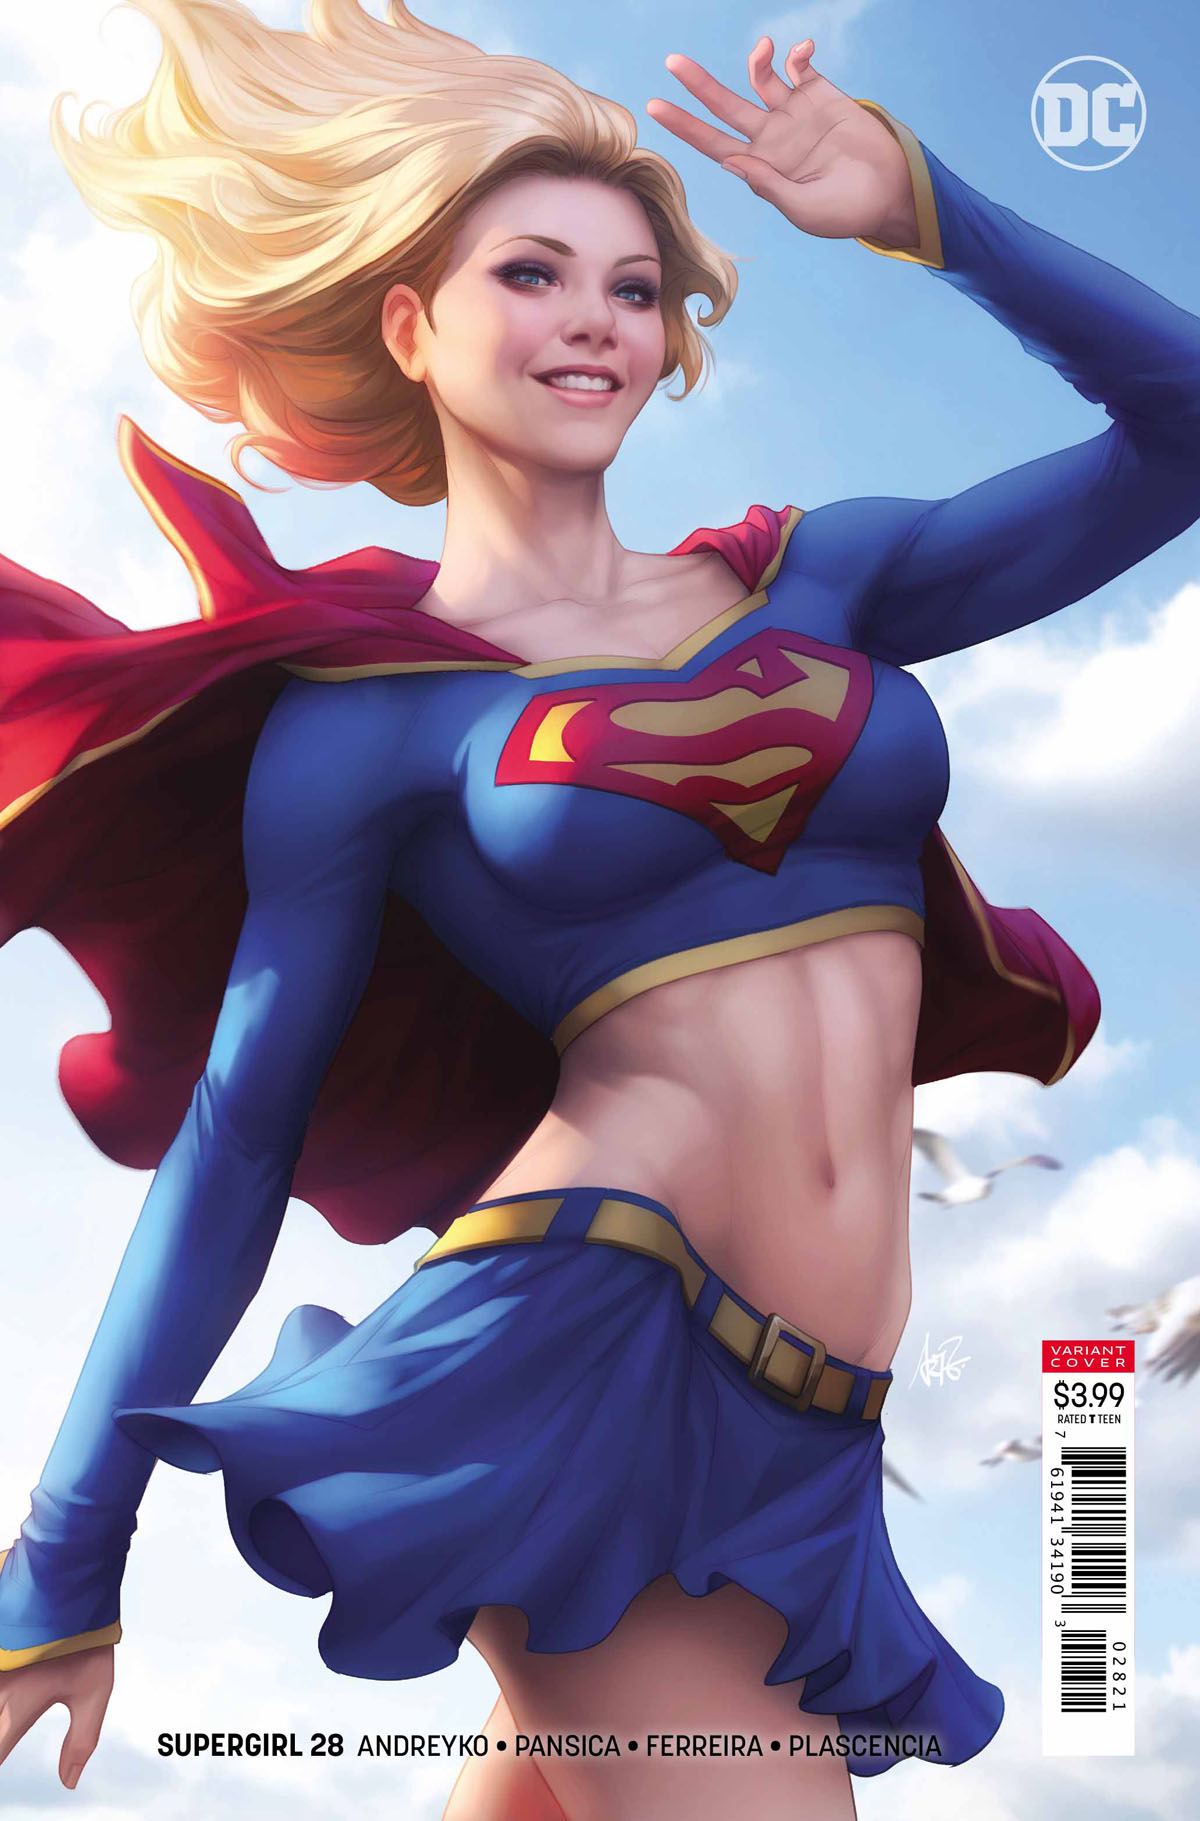 Supergirl #28 variant cover